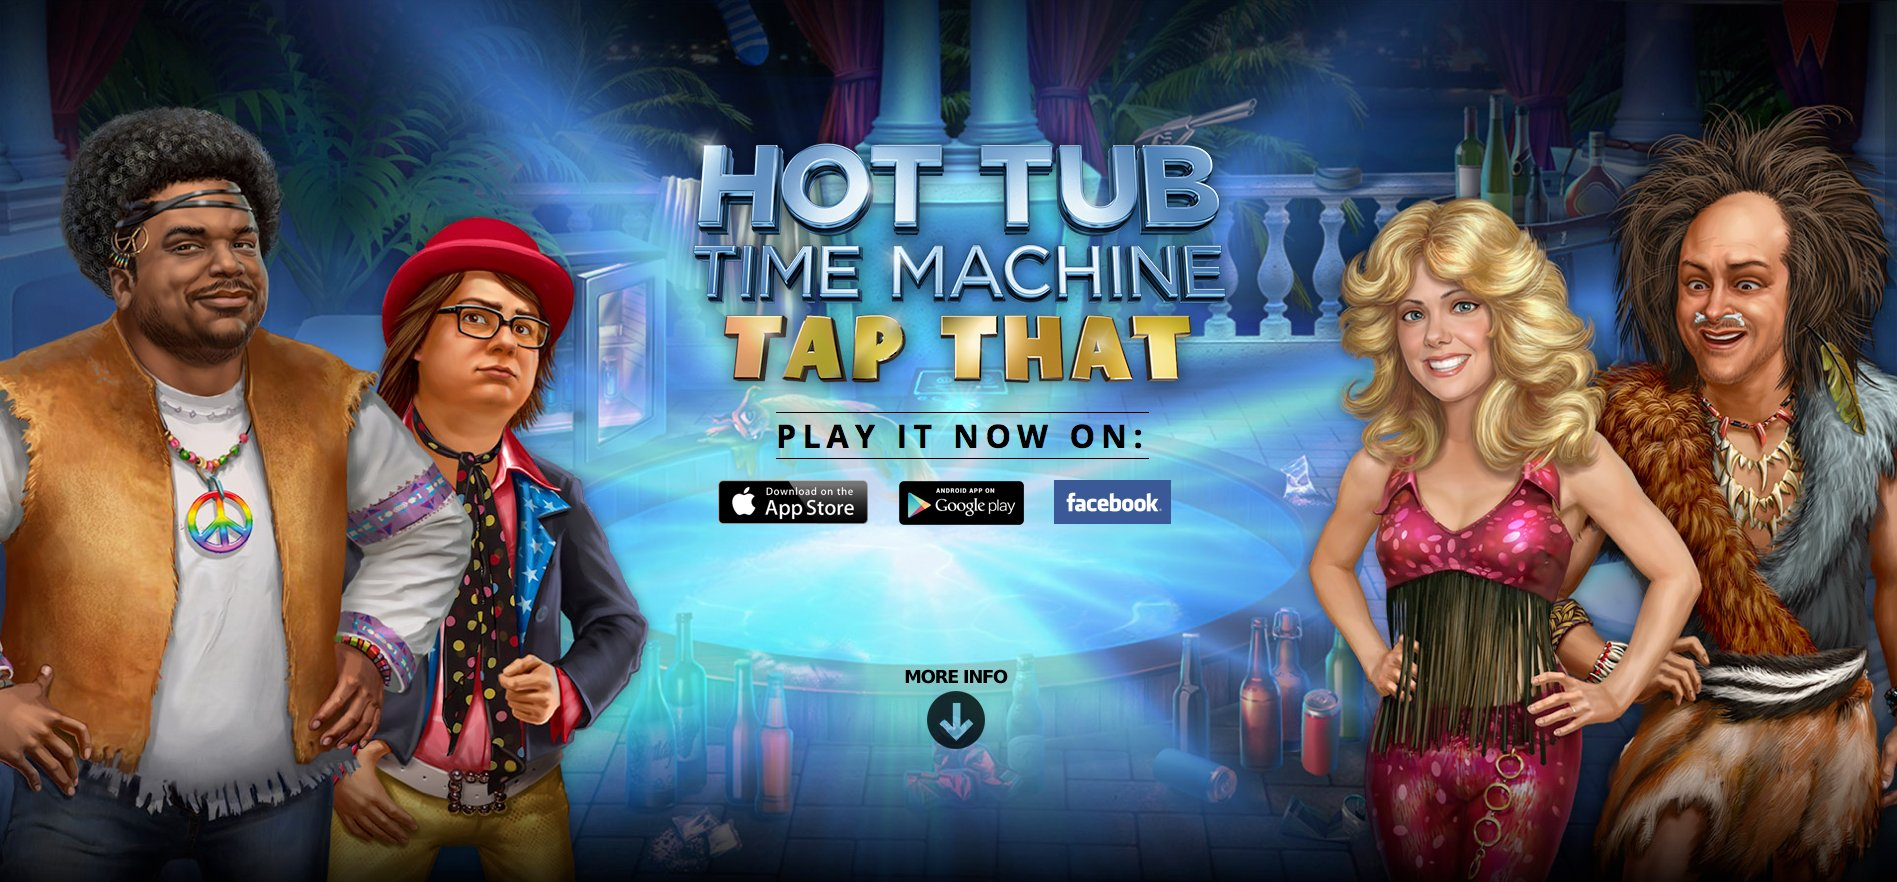 Hot Tub Time Machine: Tap That lands on the App Store full of raunchy fun